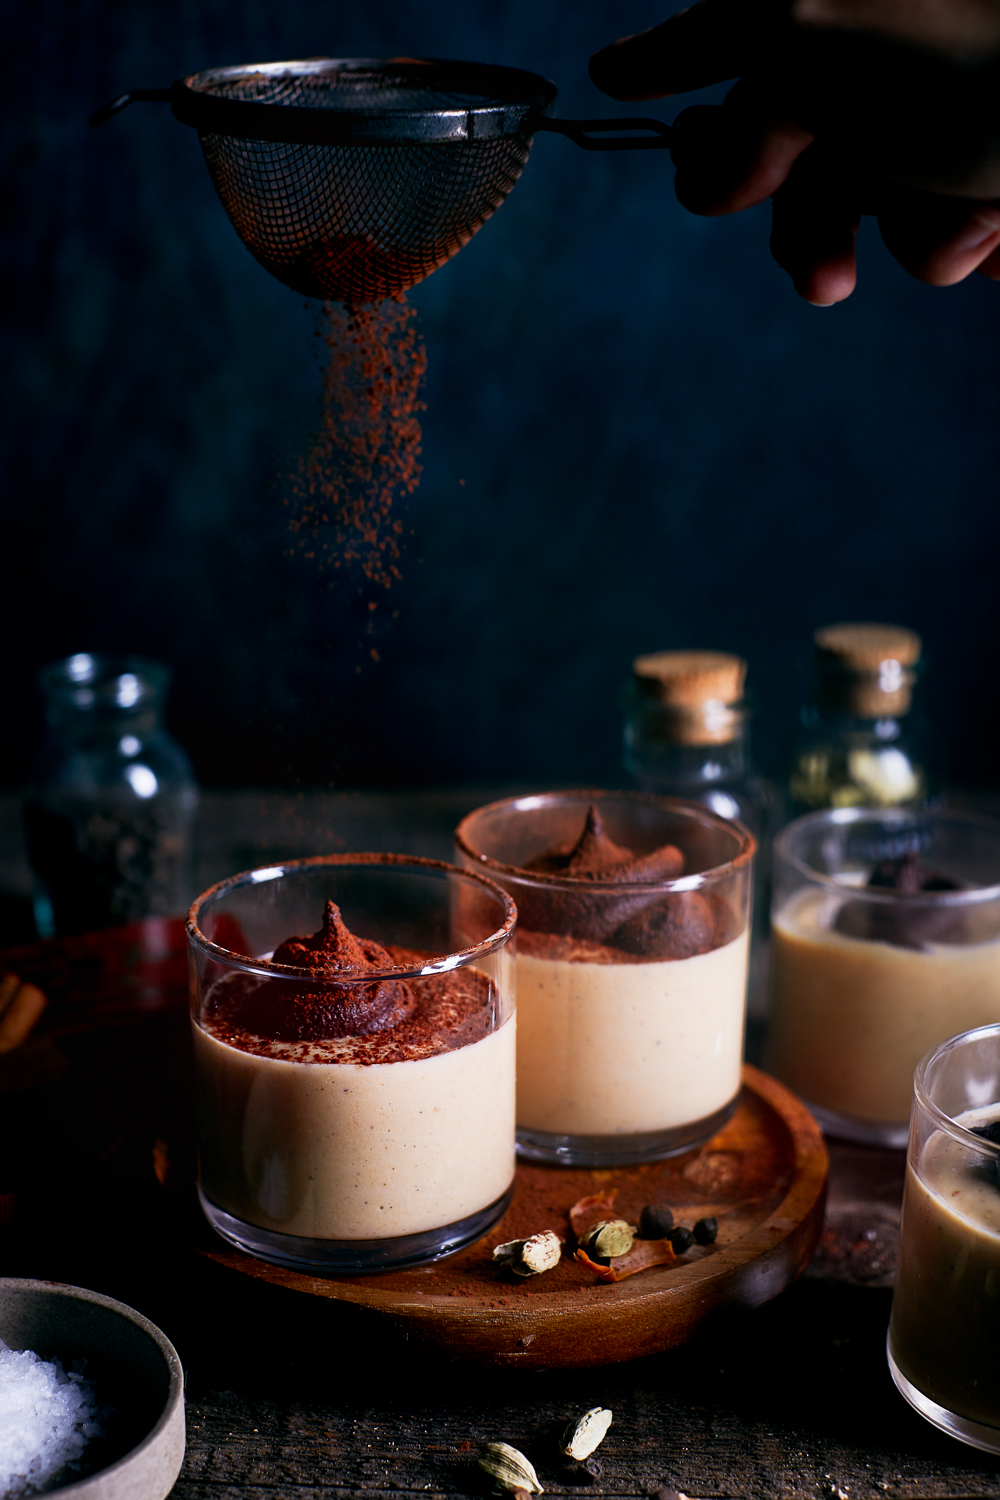 Vegan Masala Chai Pumpkin Pudding w/Dark Chocolate Ganache Swirls | Hello My Dumpling (gluten-free, refined sugar free)